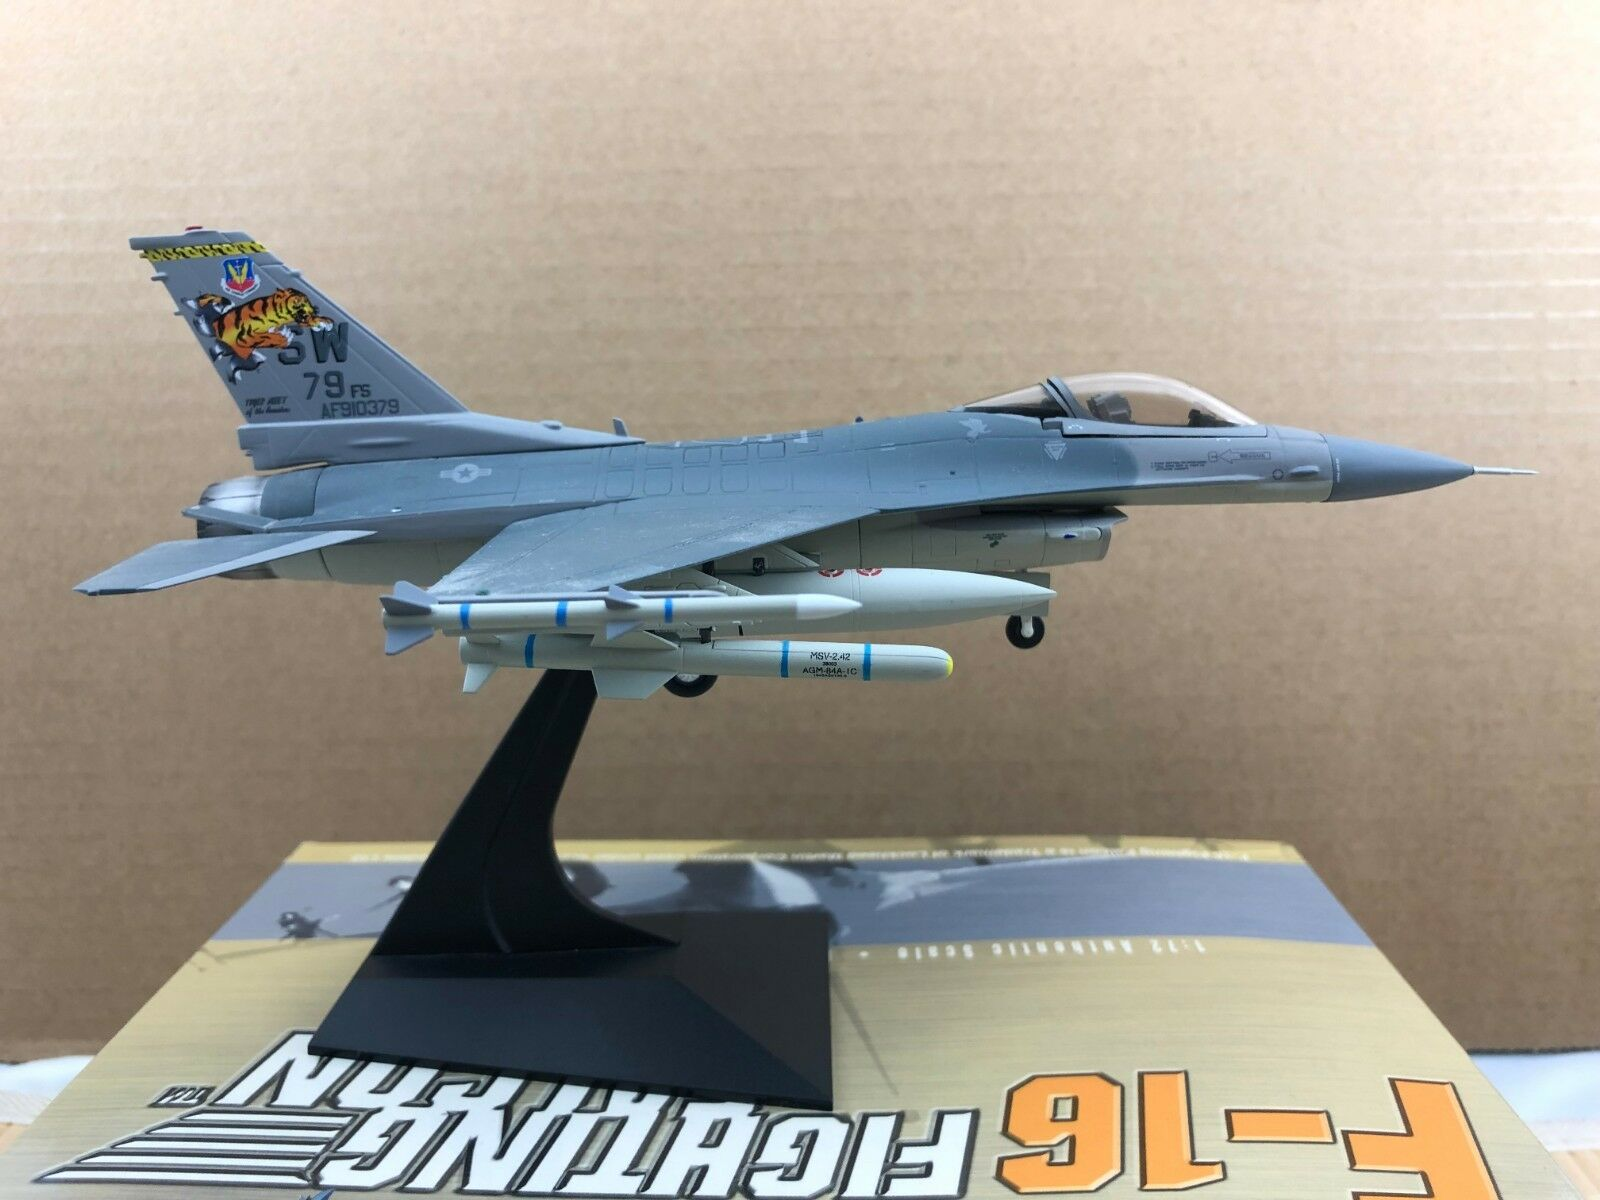 precios mas bajos Dragon Models 1 72 72 72 WARBIRDS 50008, F-16C Fighting Falcon, ACC 79th FS 20tn FW  Venta barata